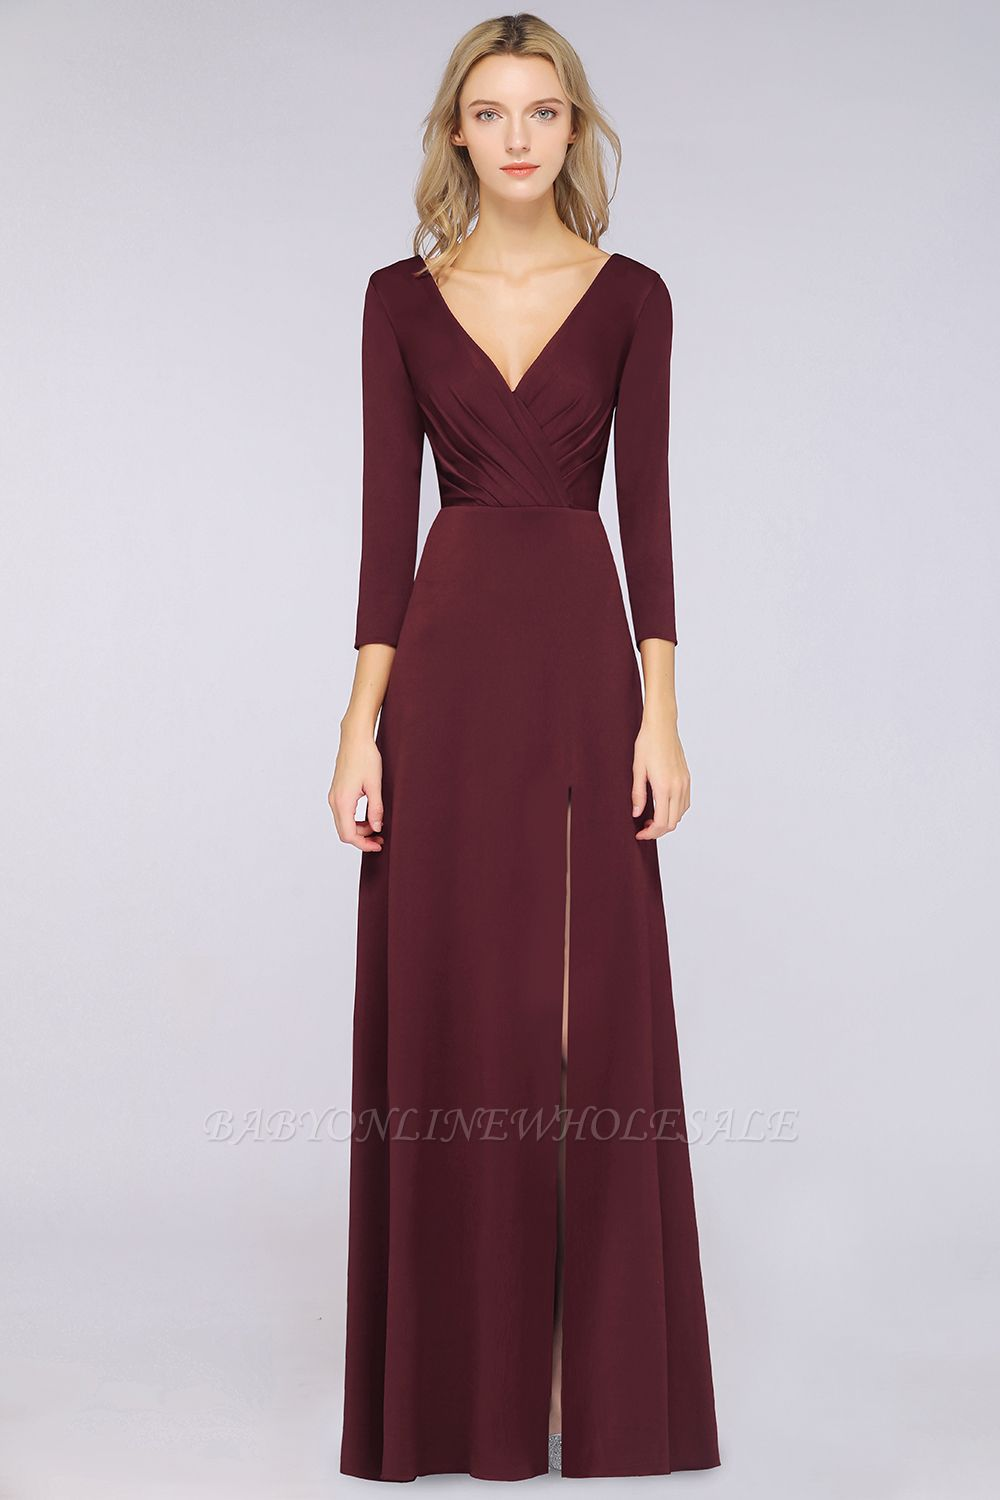 Spandex A-Line V-Neck Long-Sleeves Side-Slit Long Bridesmaid Dress with Ruffles